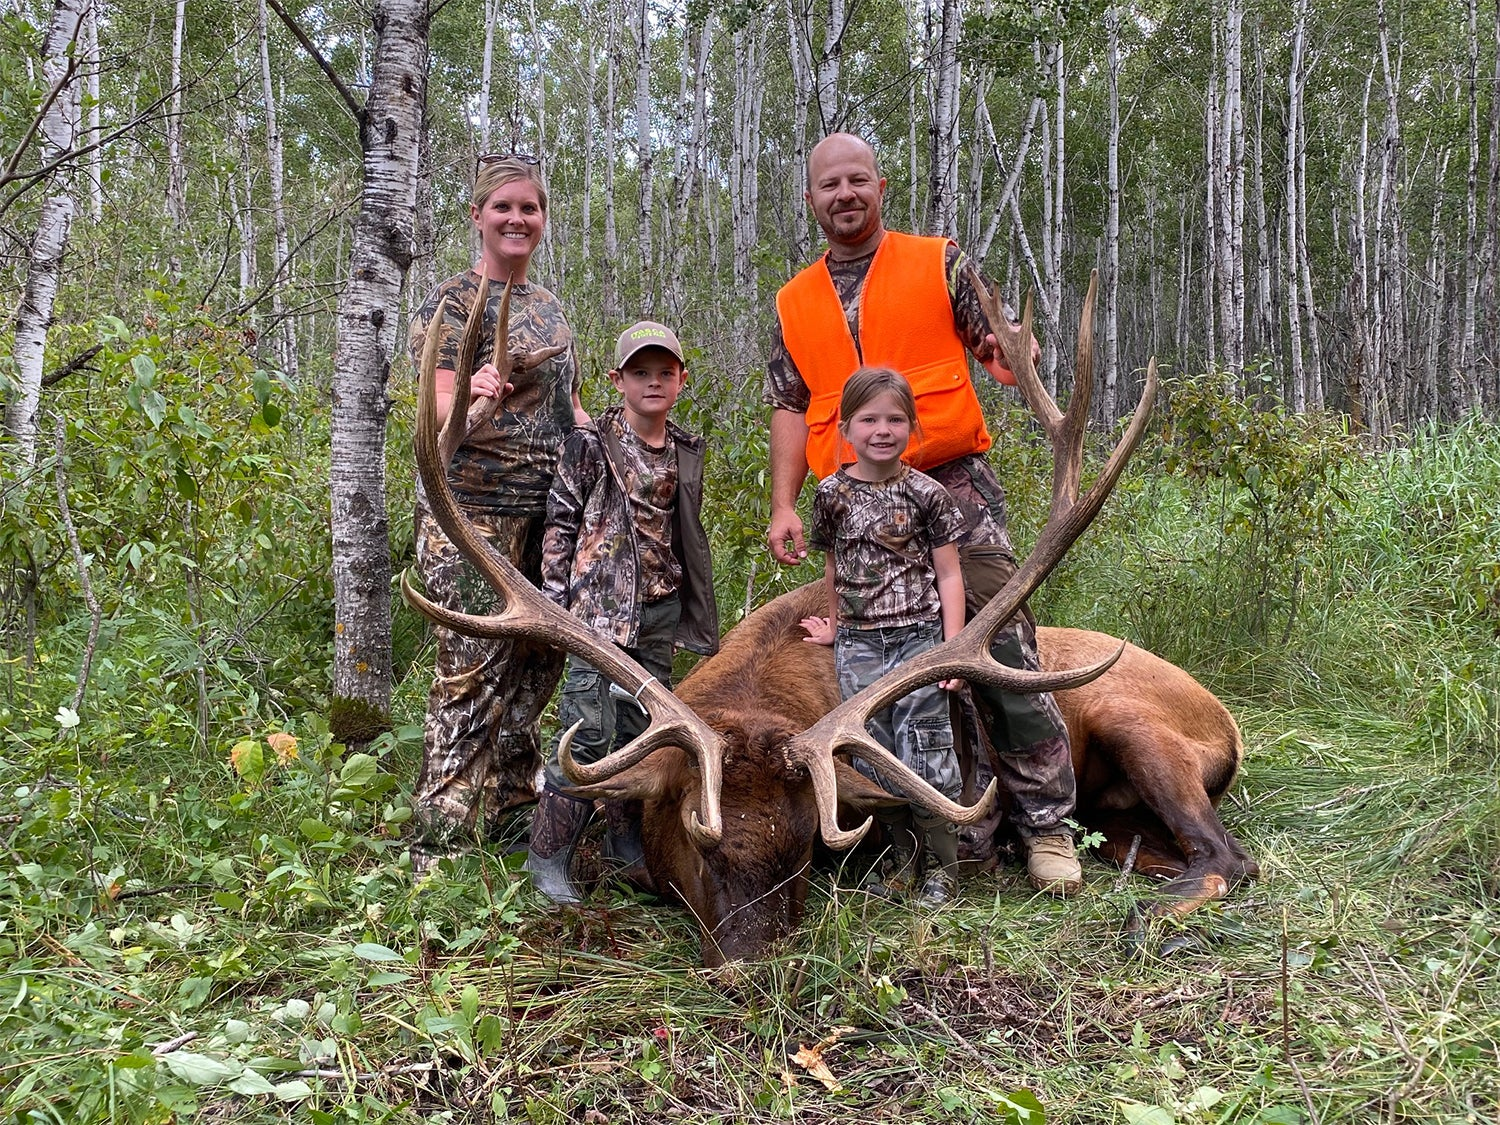 A family of four stands behind a large elk.